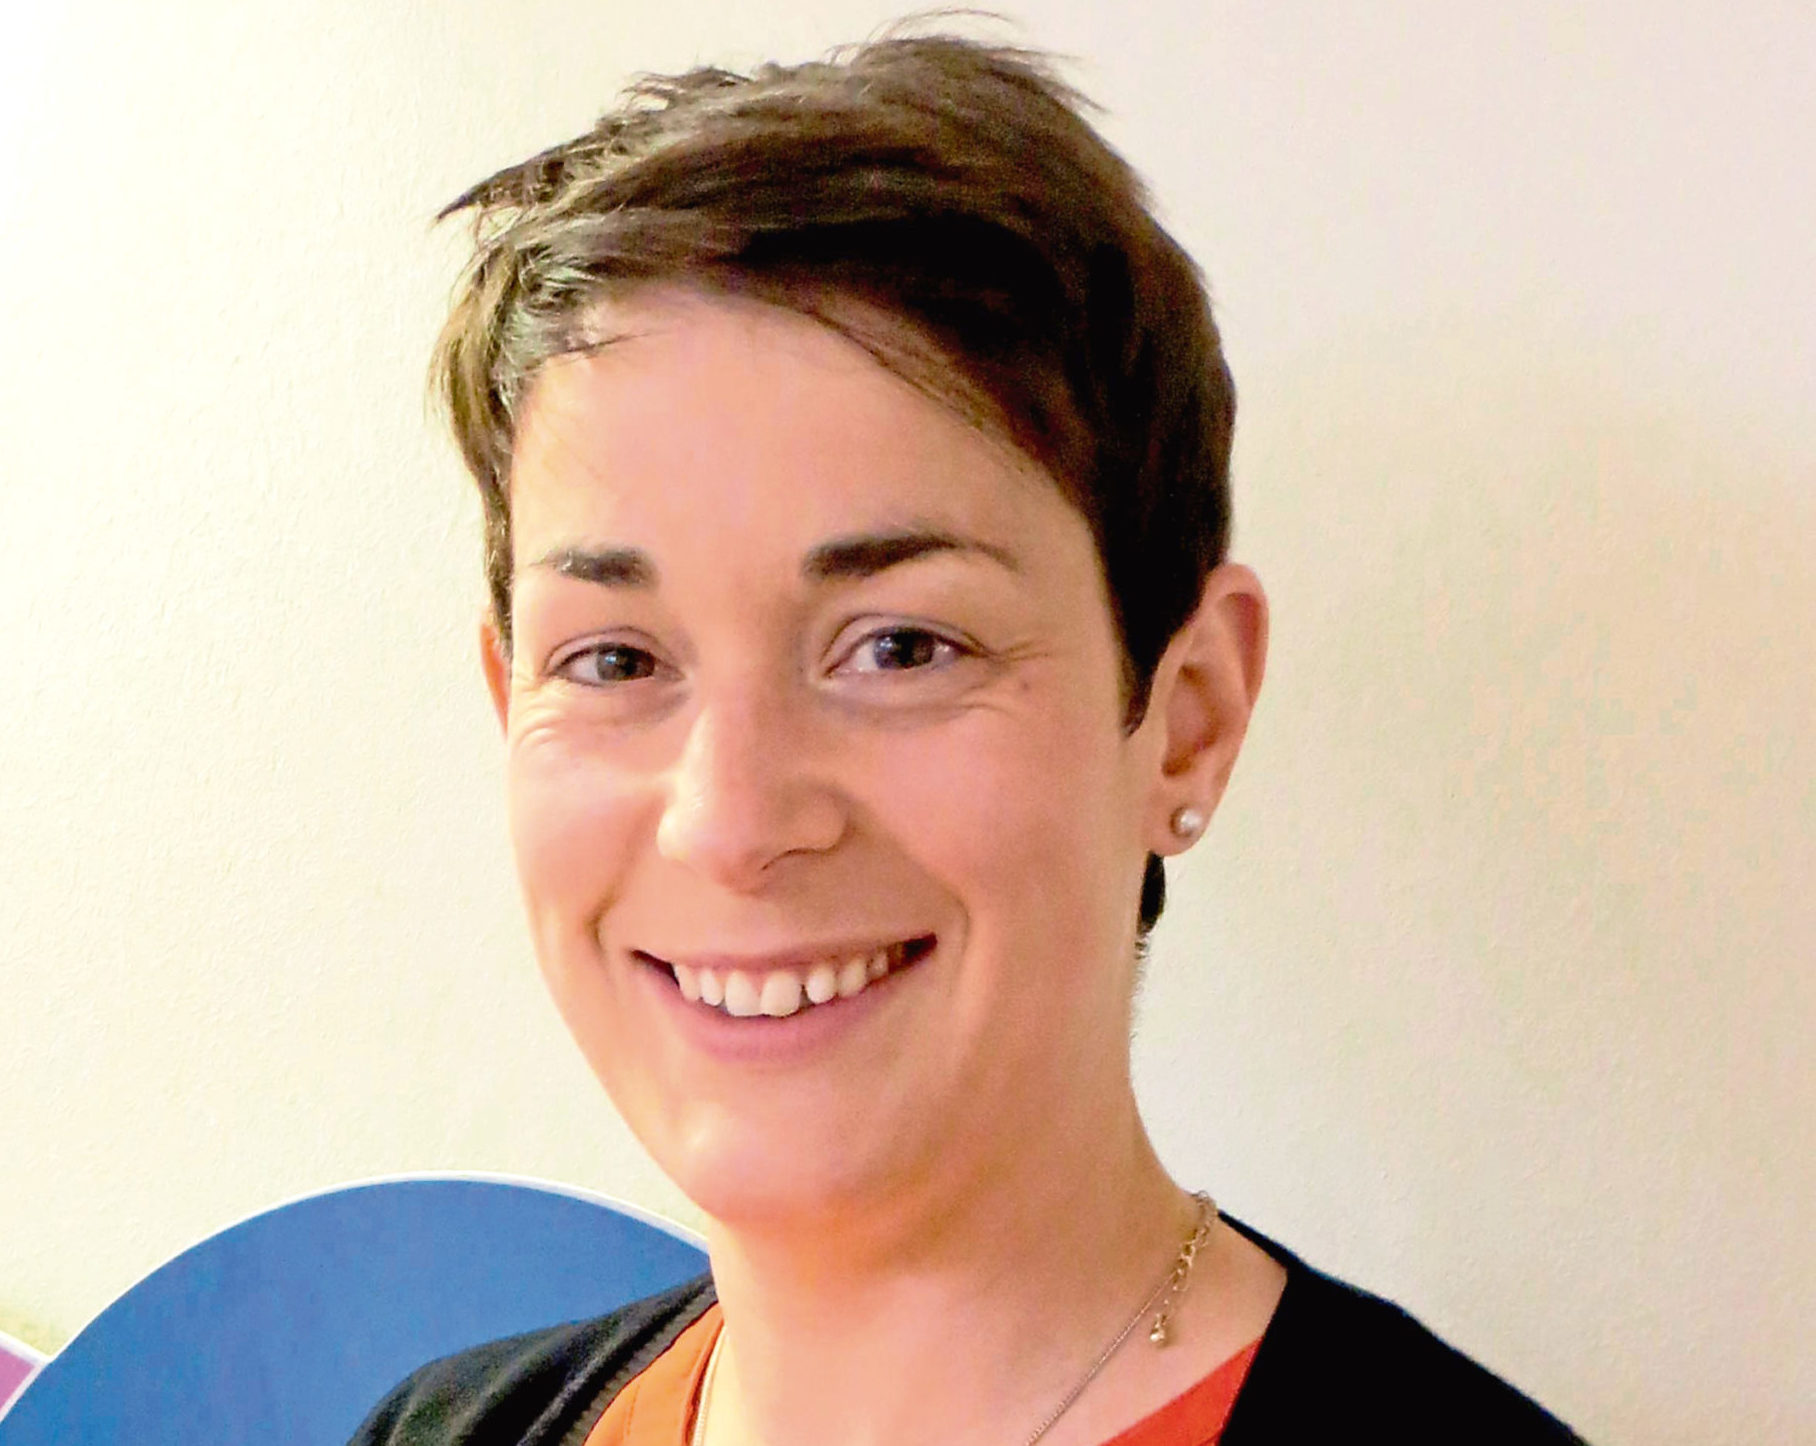 Iona Mitchell, head of cancer support services at CLAN Cancer Support